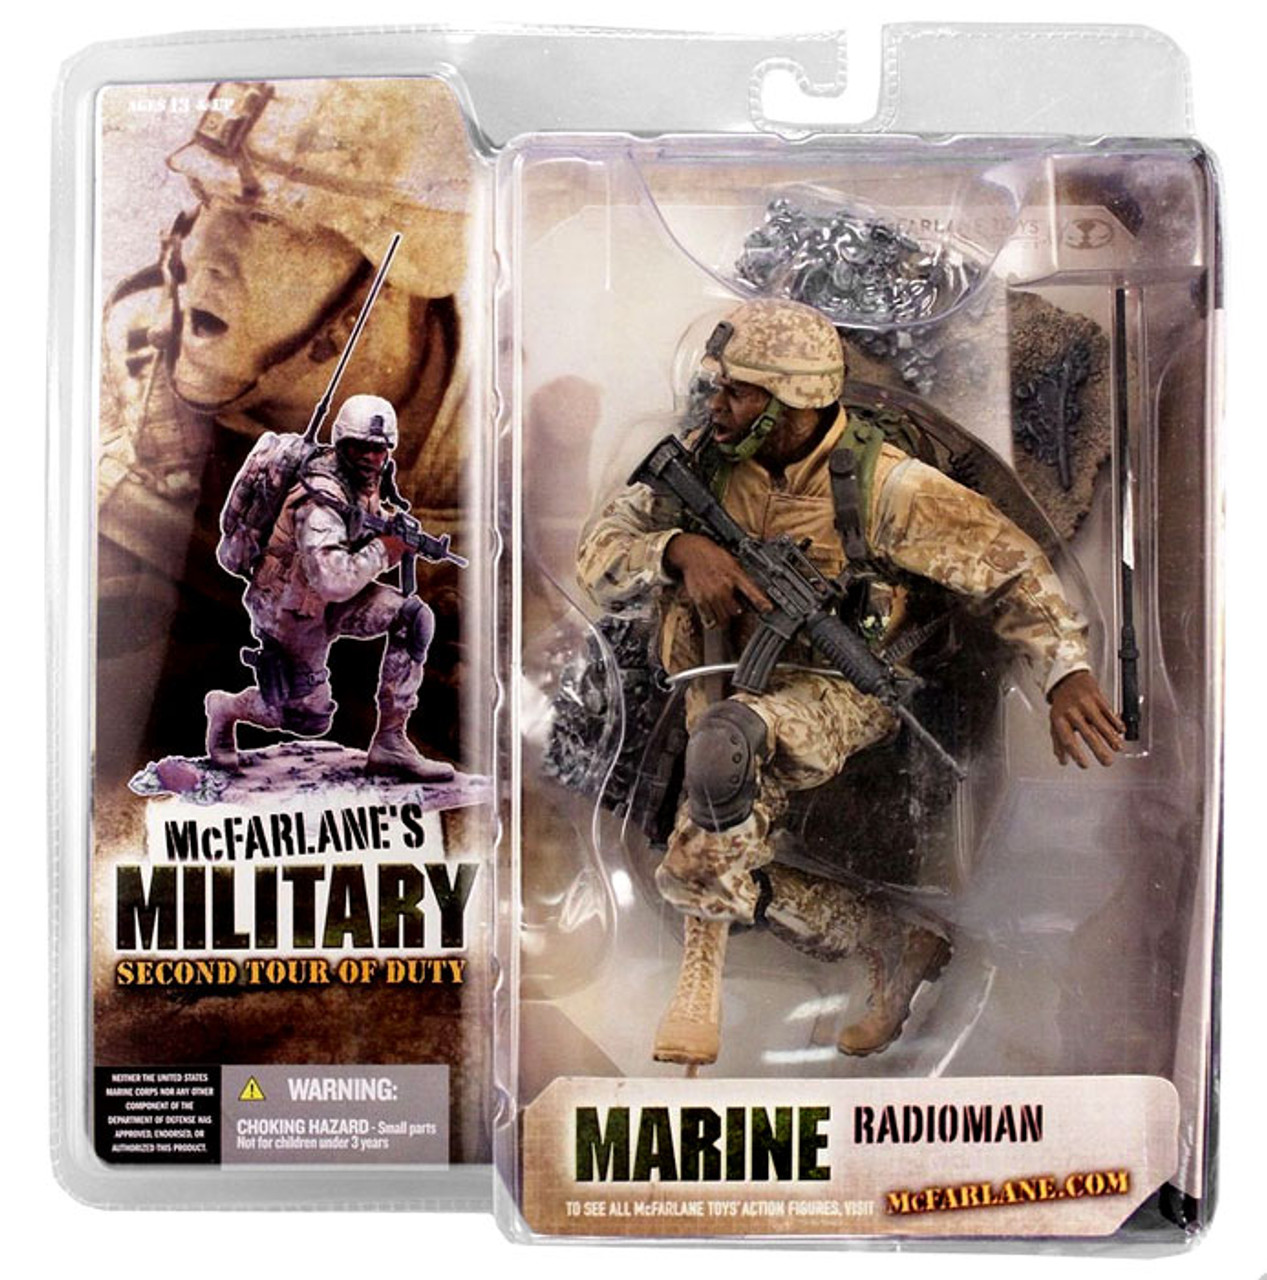 McFarlane Toys Military 2nd Tour of Duty Marine Radioman Action Figure [African American]